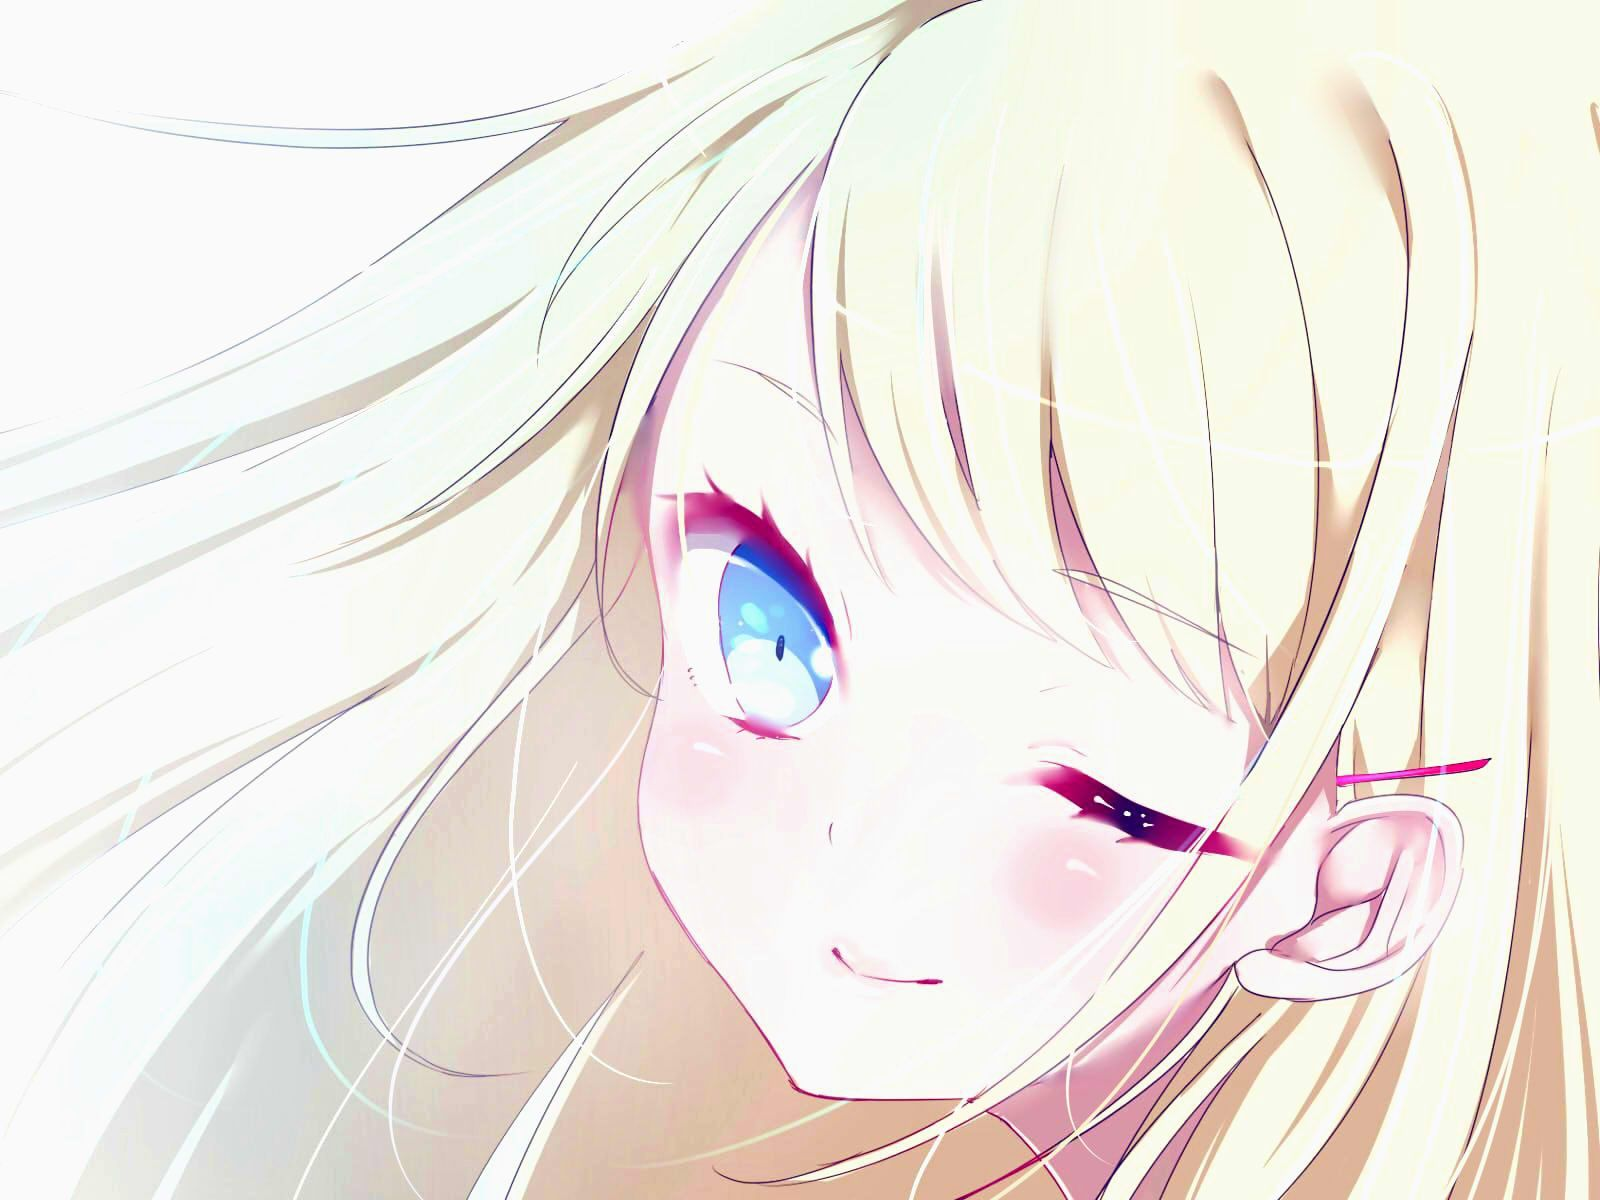 Anime Picture 1600x1200 With Original Fuu 07199382 Long Hair Single Blush Looking At Viewer Blue Eyes Anime Anime Love Anime Expressions